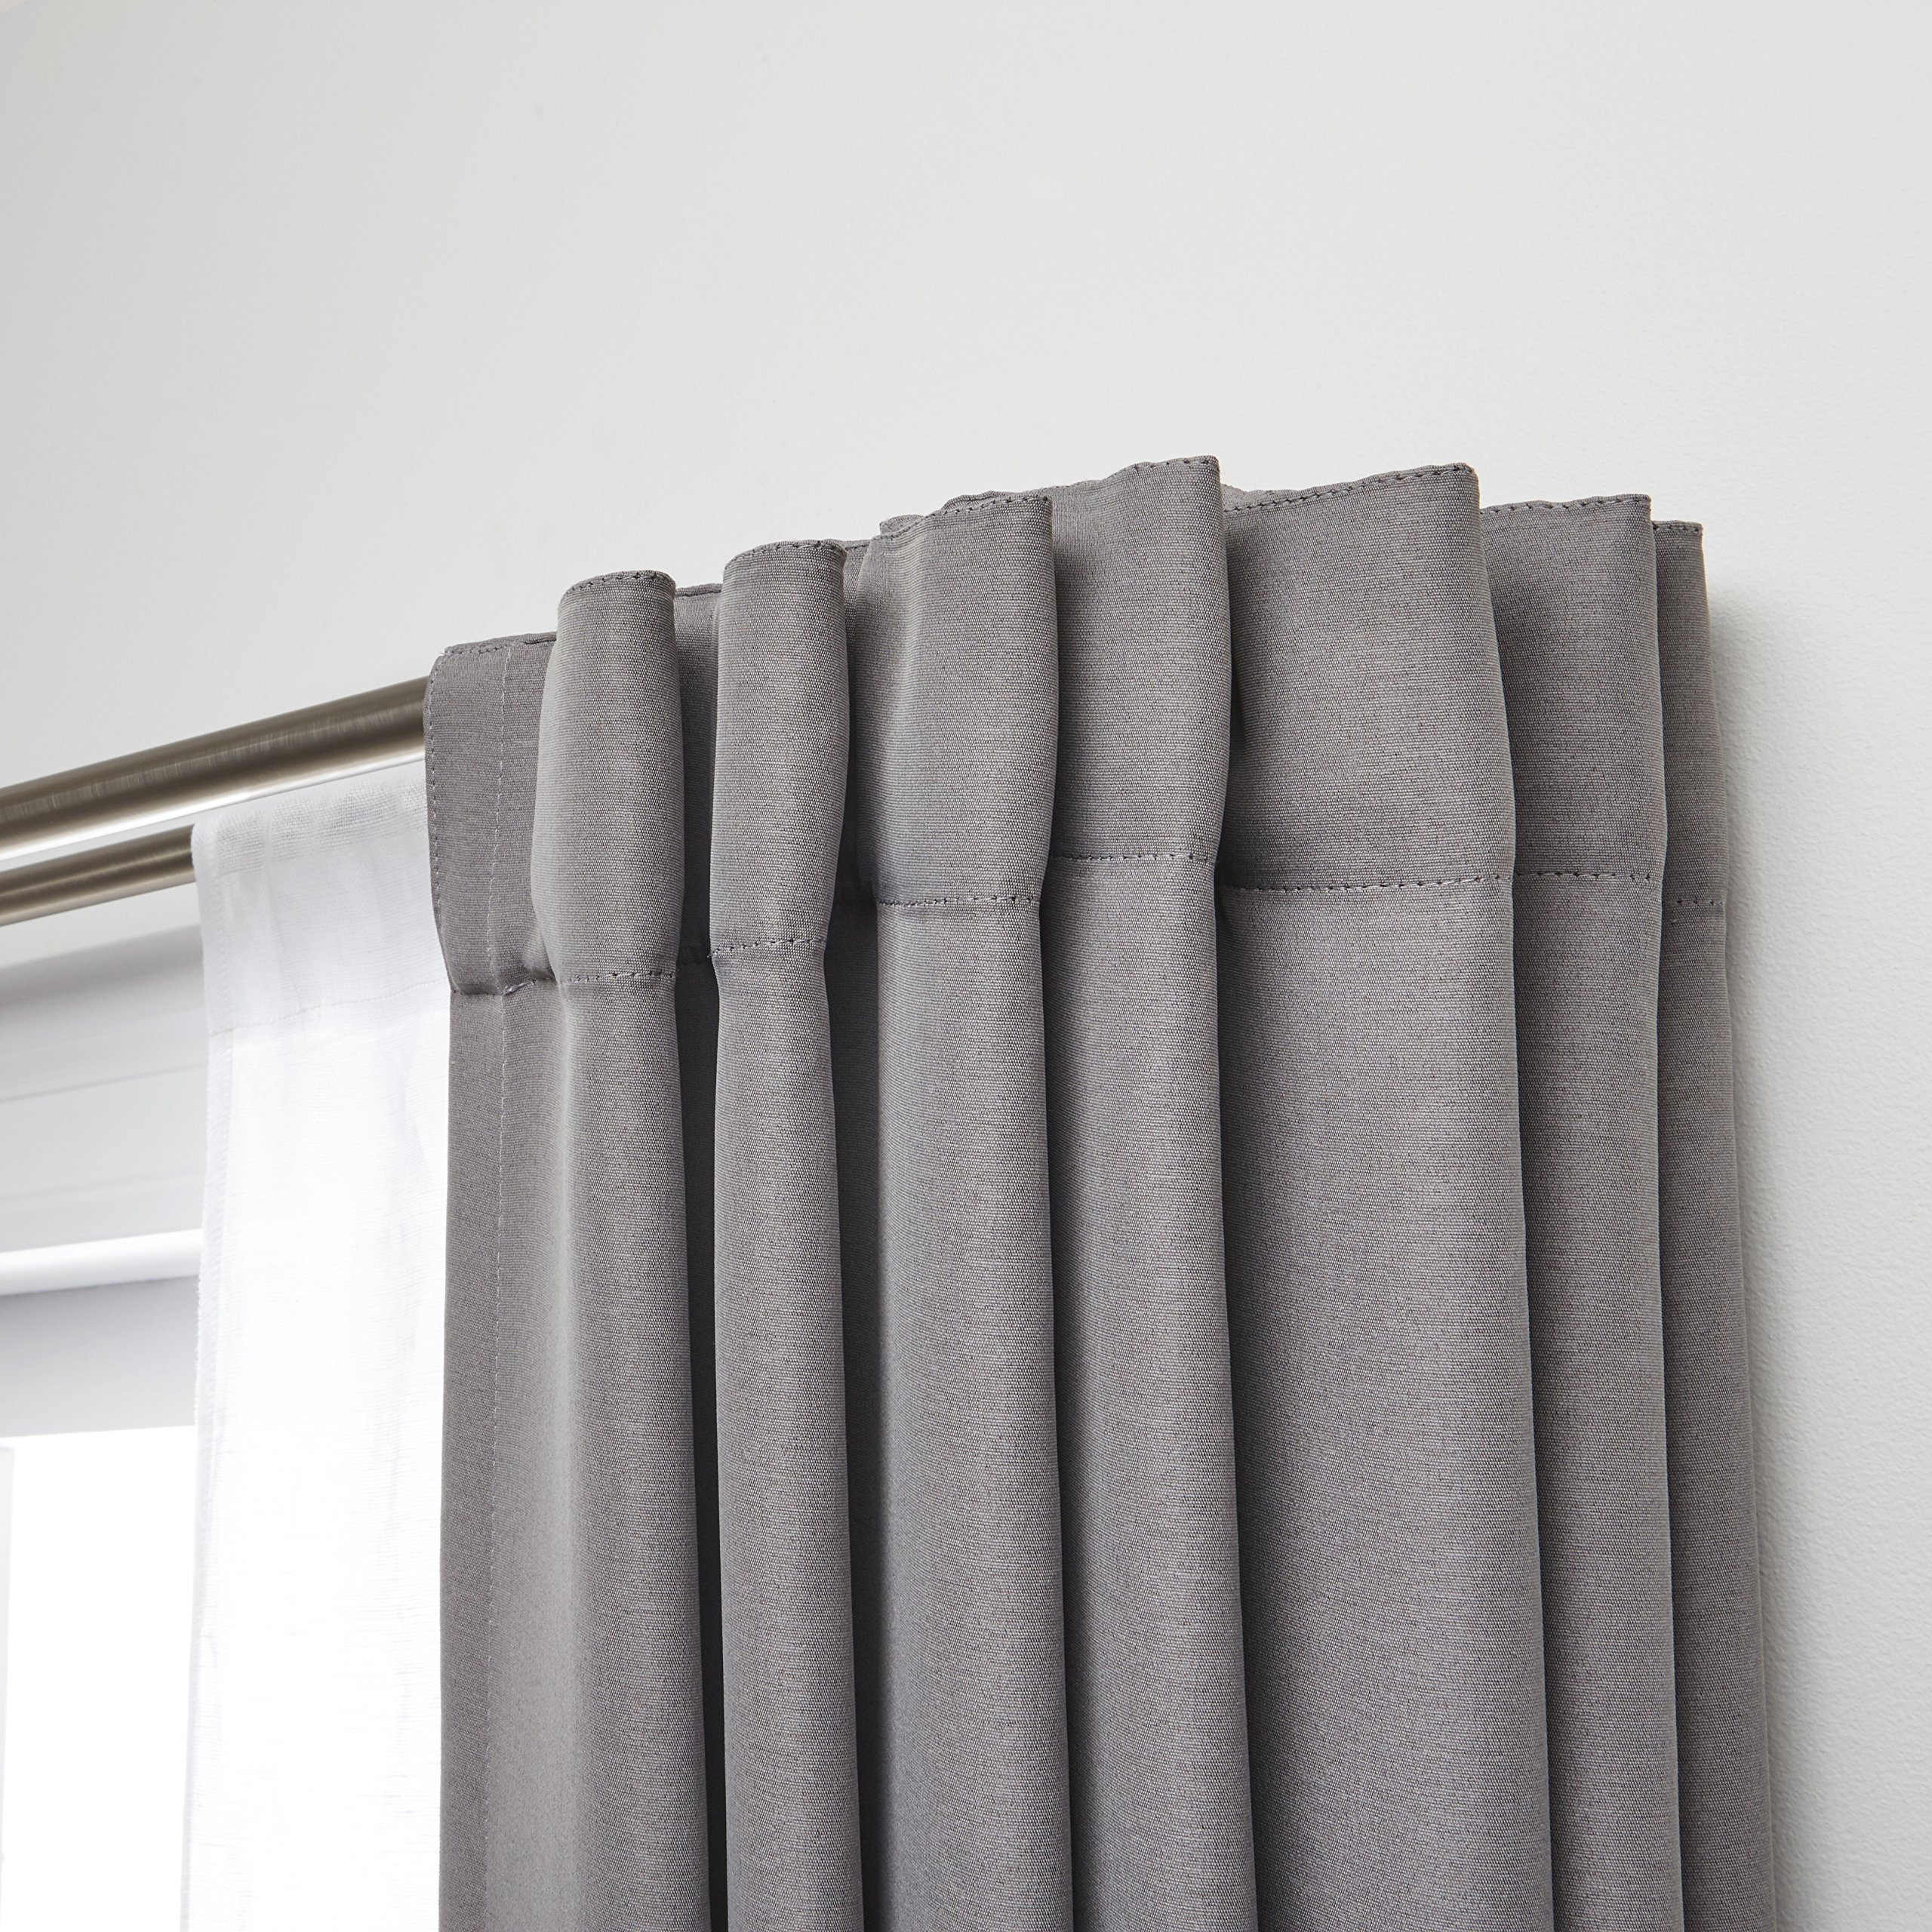 Umbra Twilight Double Curtain Rod Set – Wrap Around Design is Ideal for Blackout Curtains or Room Darkening Curtains, 88 to 144 Inch, Matte Nickel by Umbra